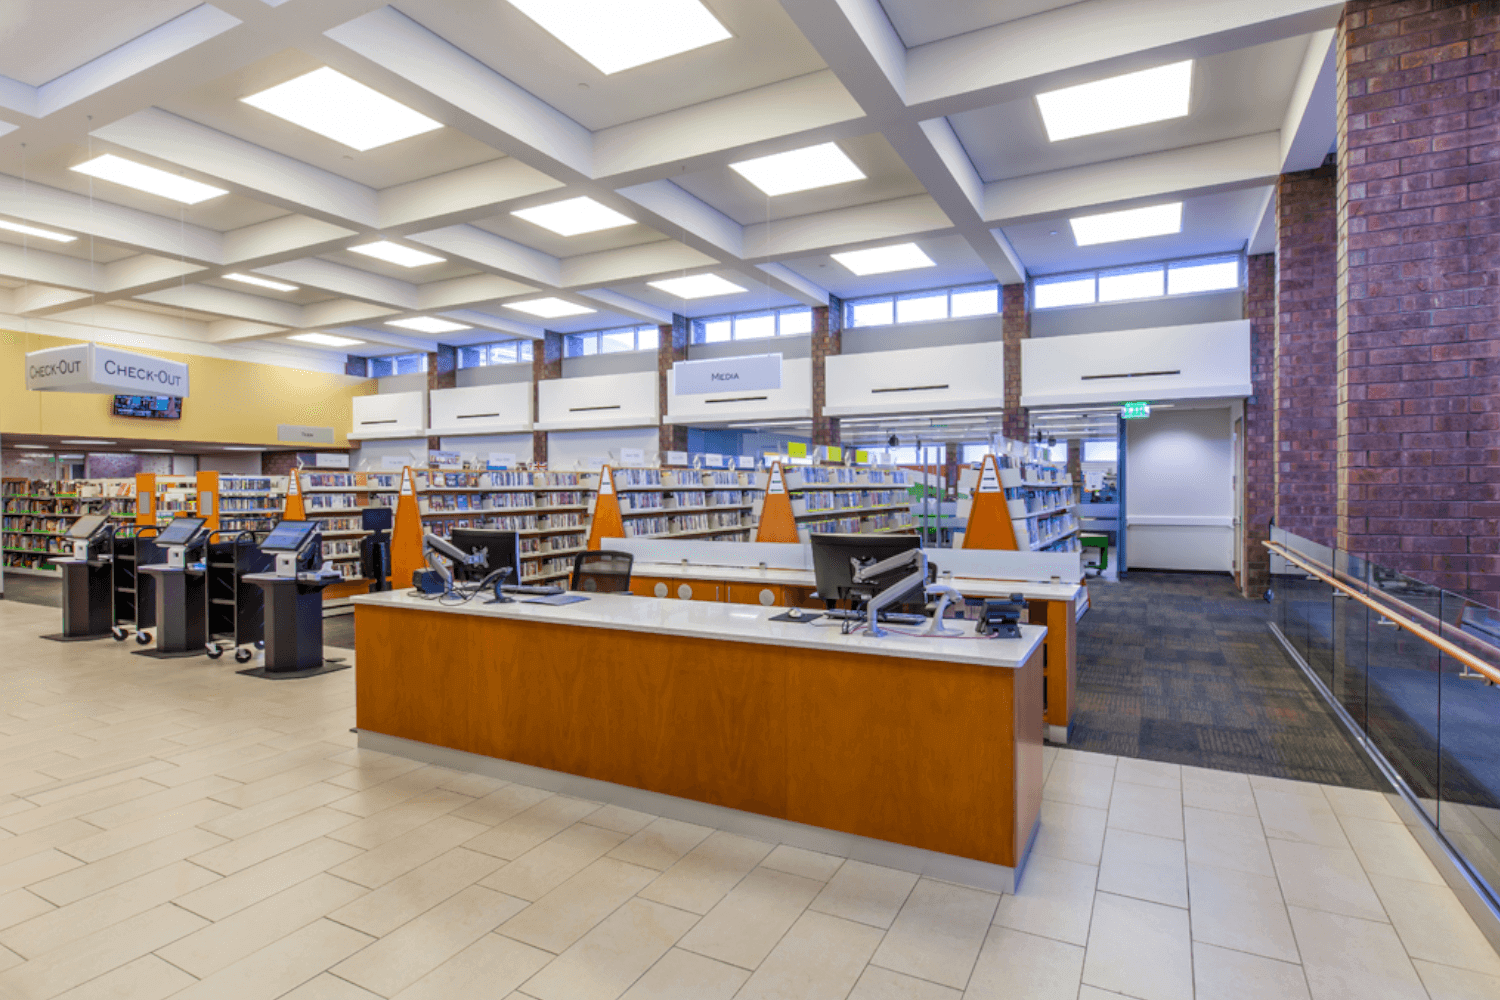 Deerfield Public Library Make Space Renovation Project lobby